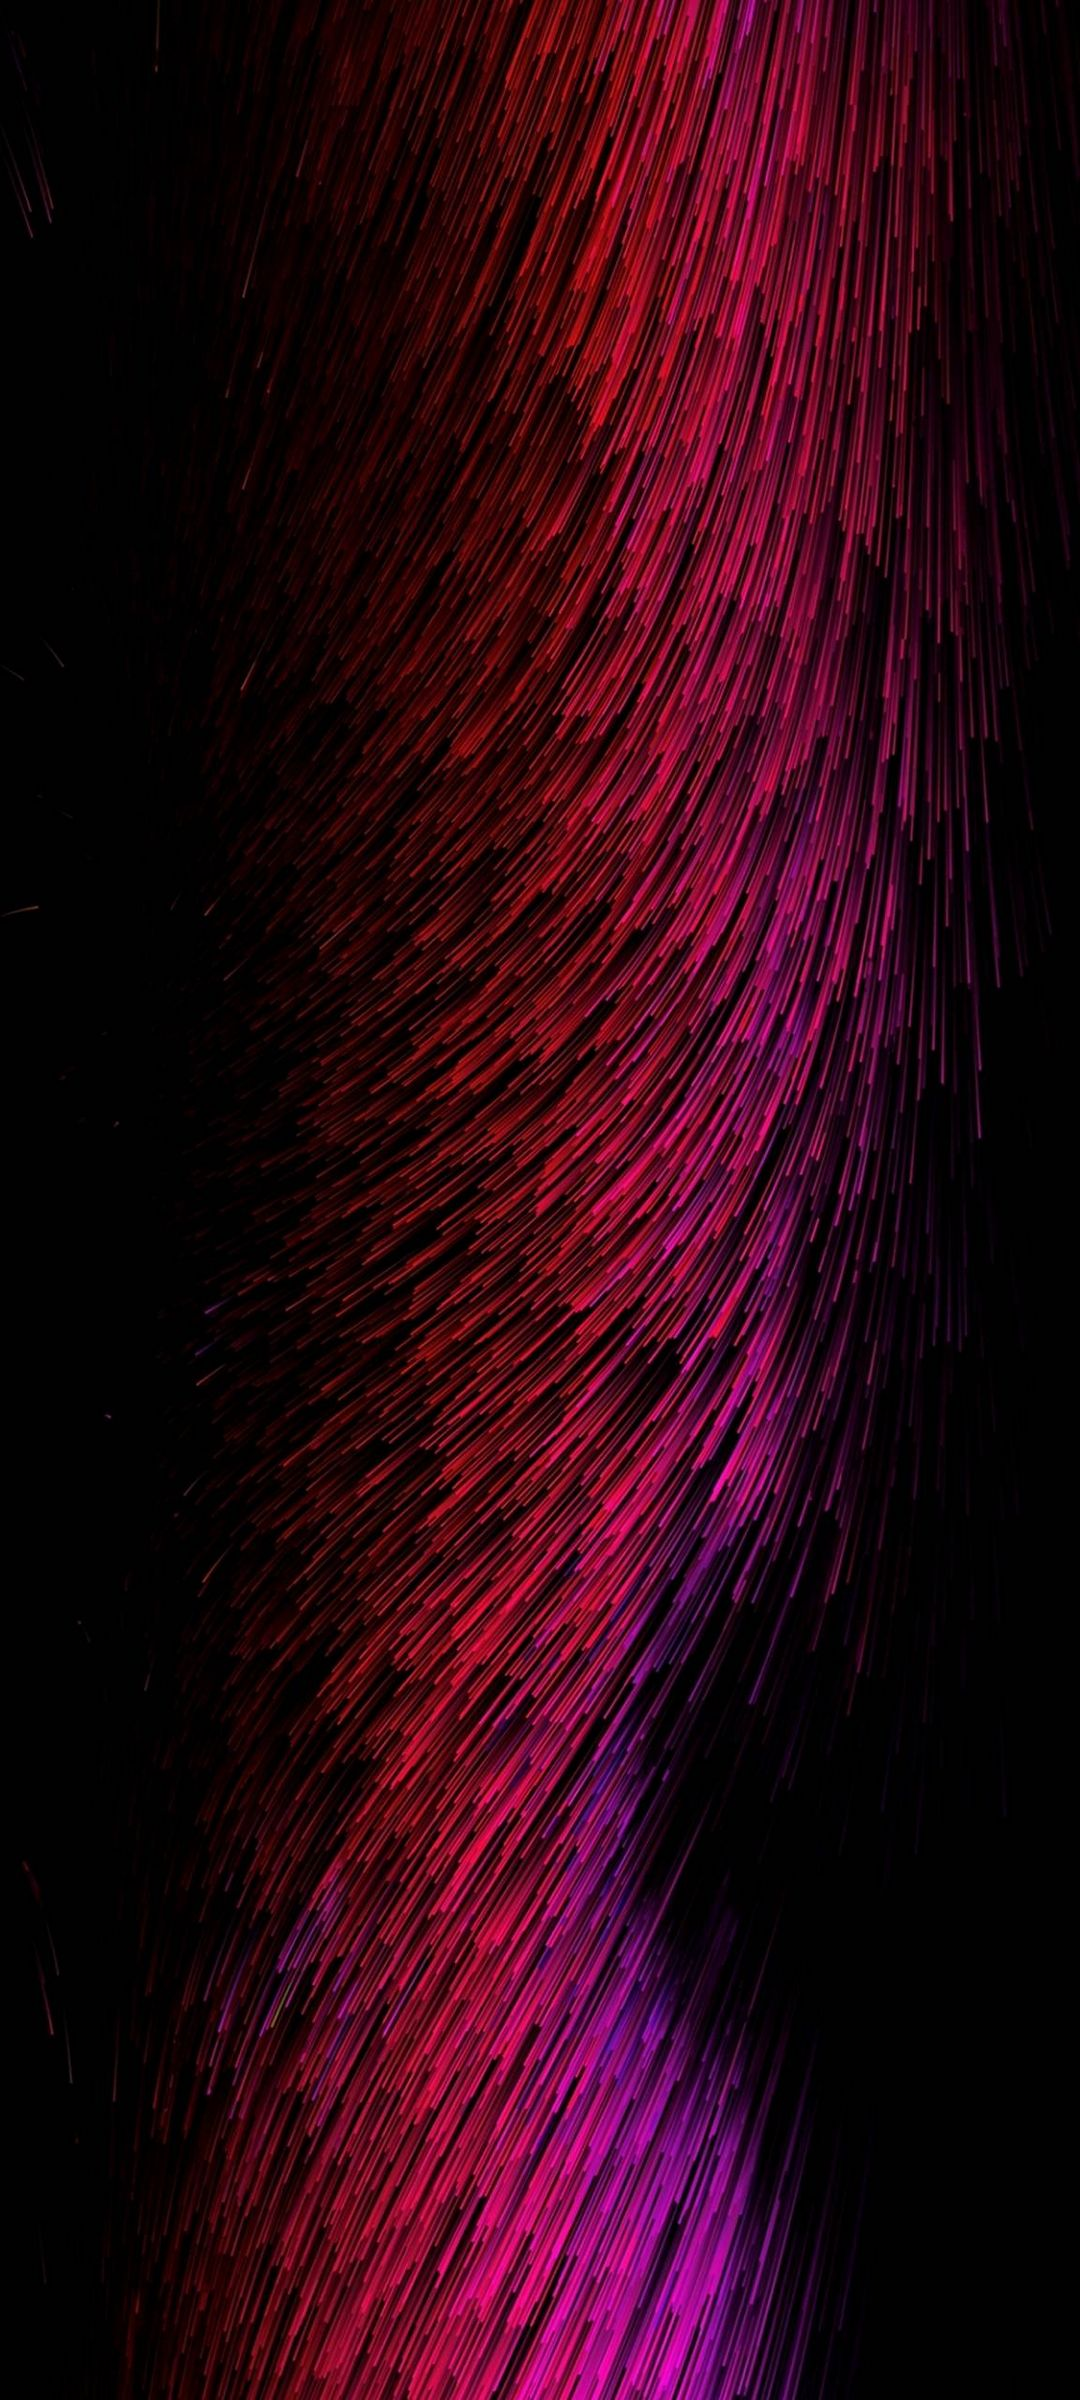 Threads Glow Red Pink Abstract